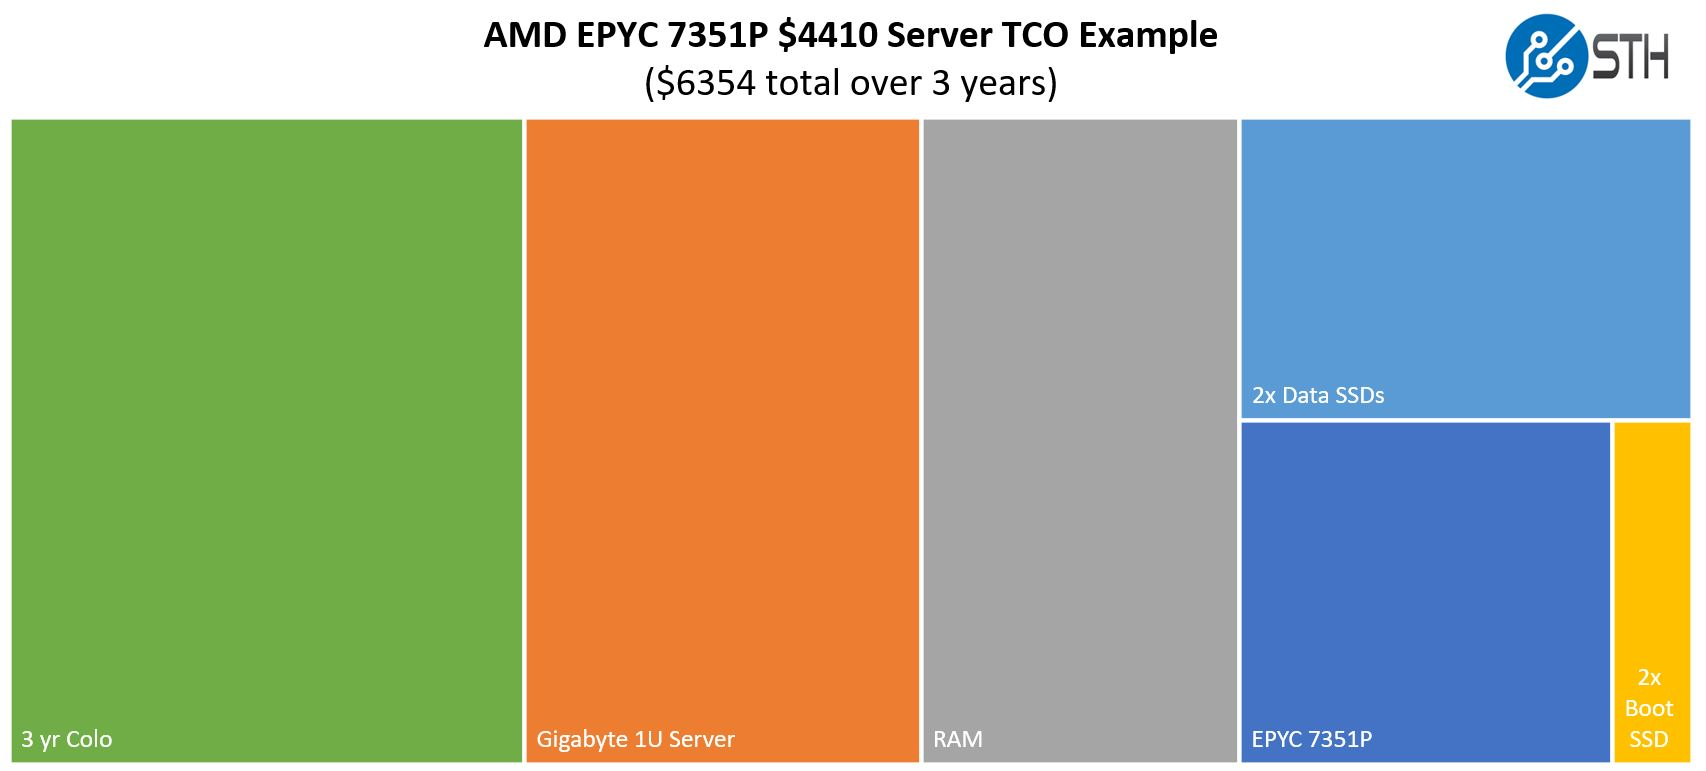 AMD EPYC 7351P TCO Example Low End